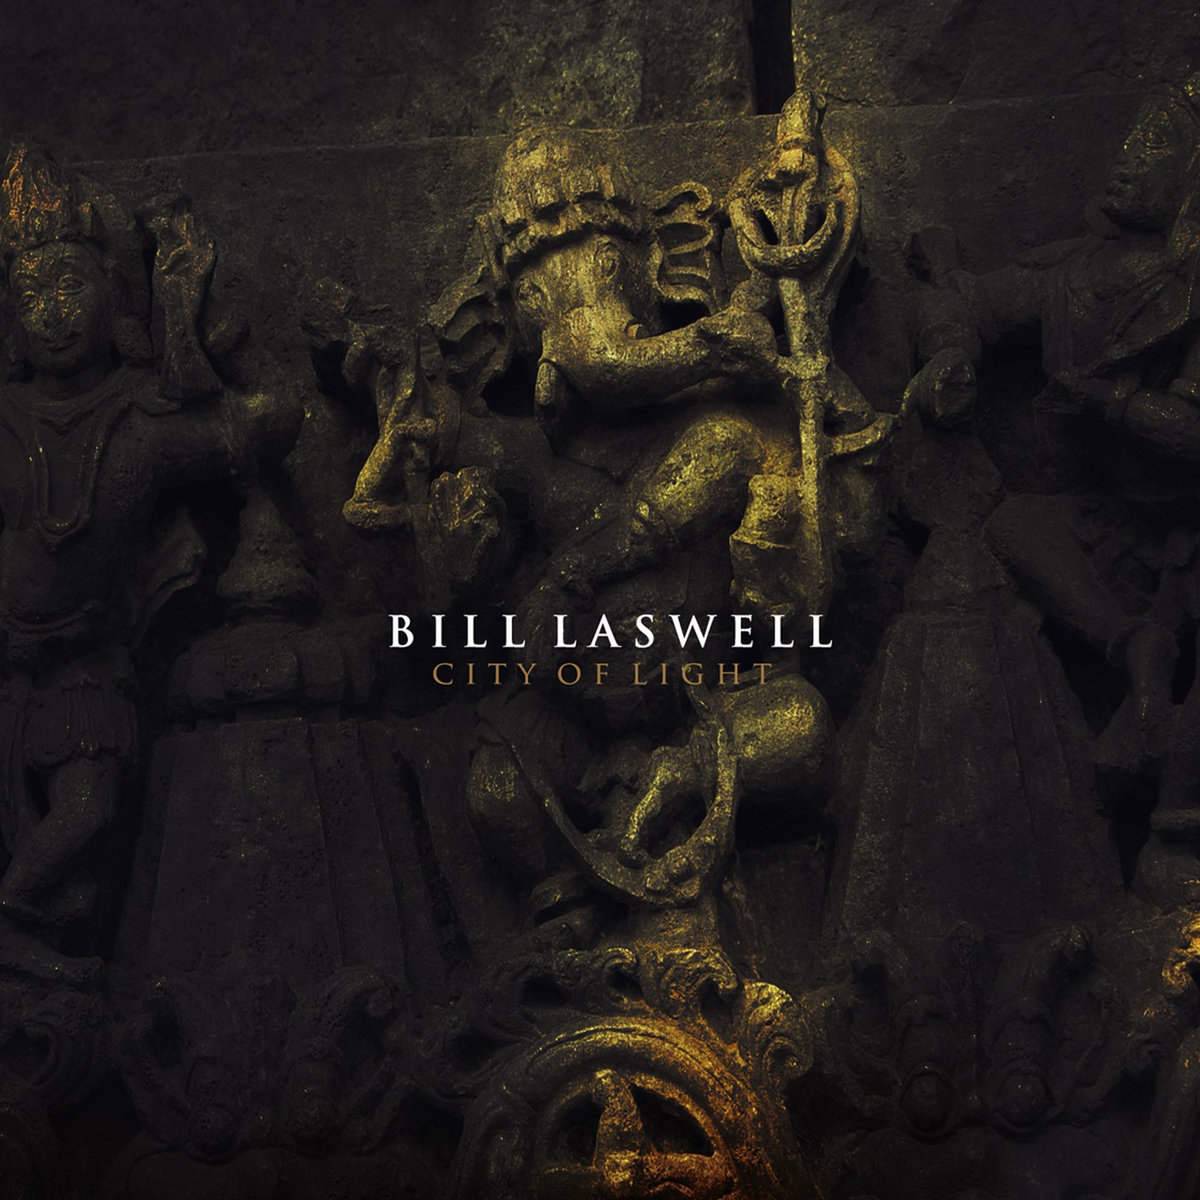 Bill Laswell feat. Coil & Tetsu Inoue - City Of Light